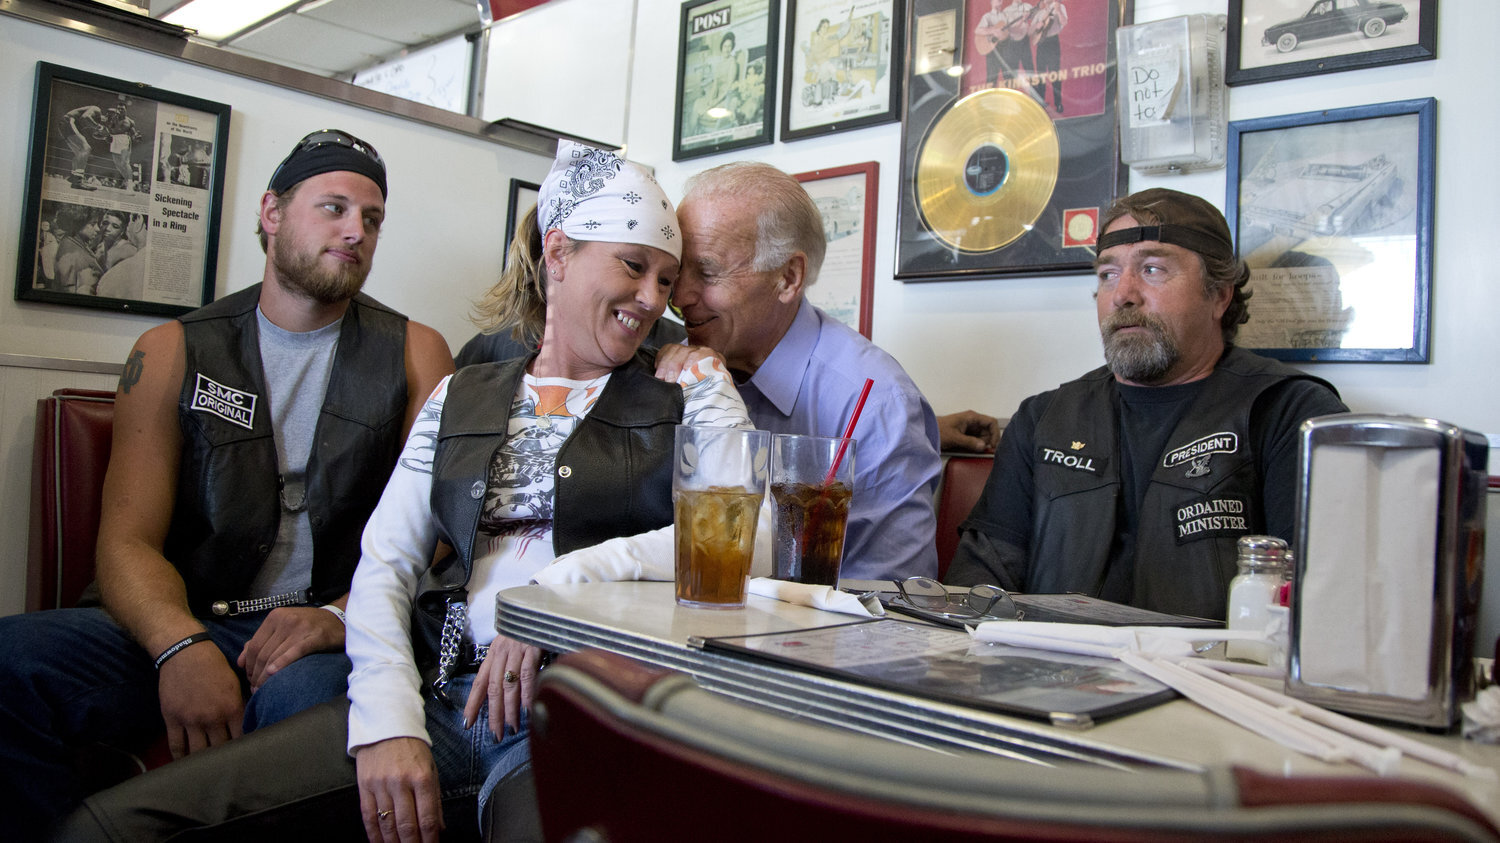 One reason not to like Joe Biden? He stole this trucker's old lady, thereby violating the sacred trucker code.